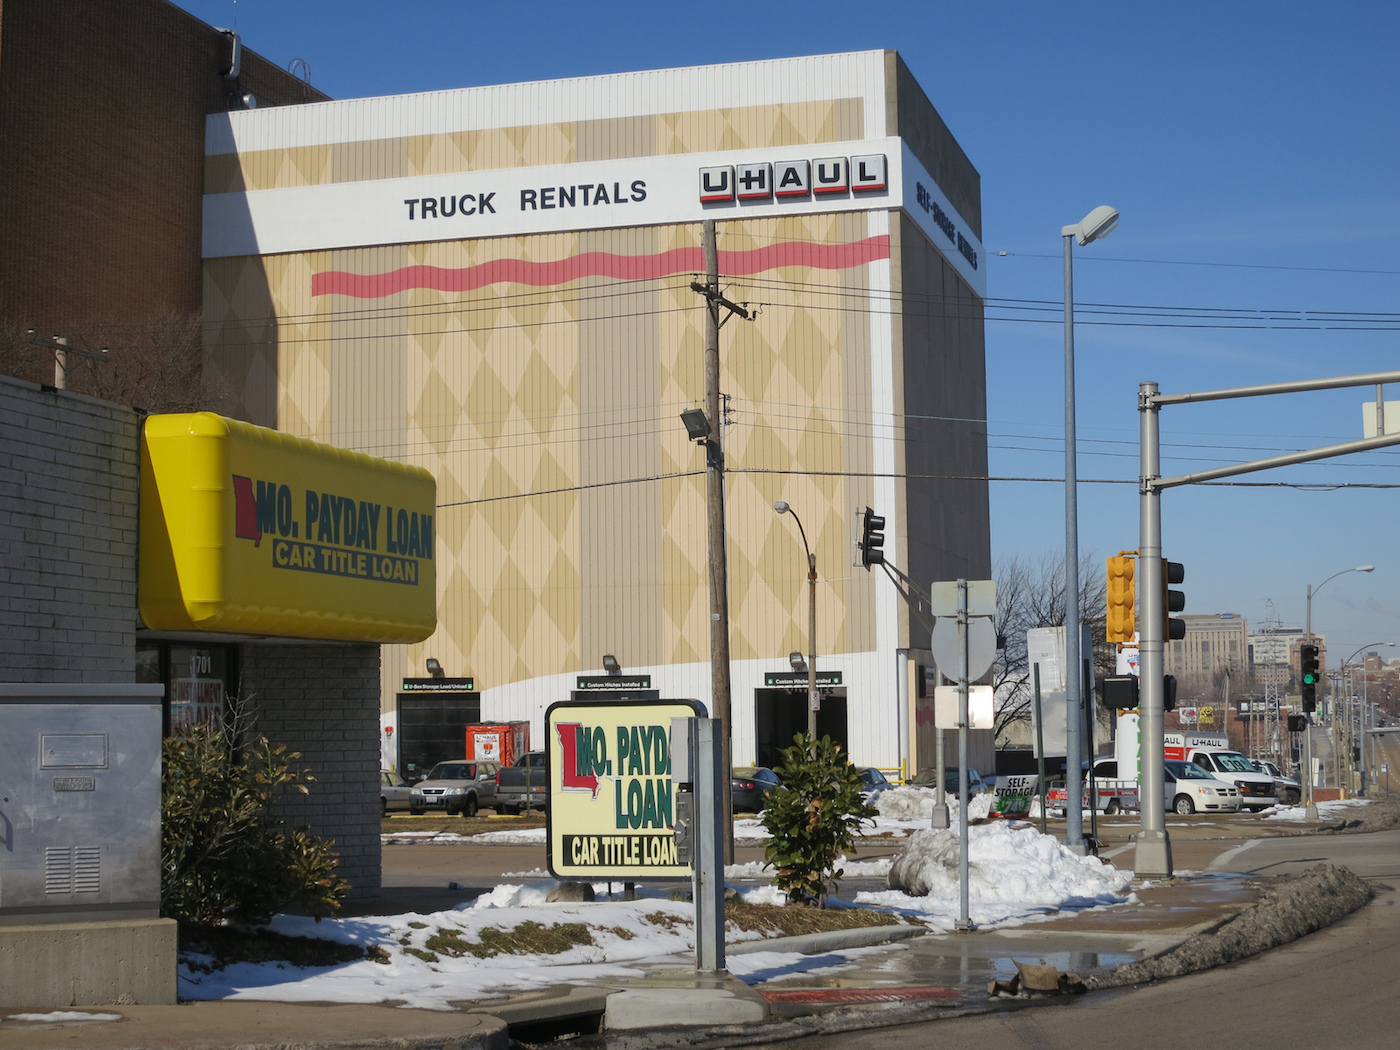 U-Haul in the former Magic Chef building in 2013 (photo by Paul Sableman/Flickr)